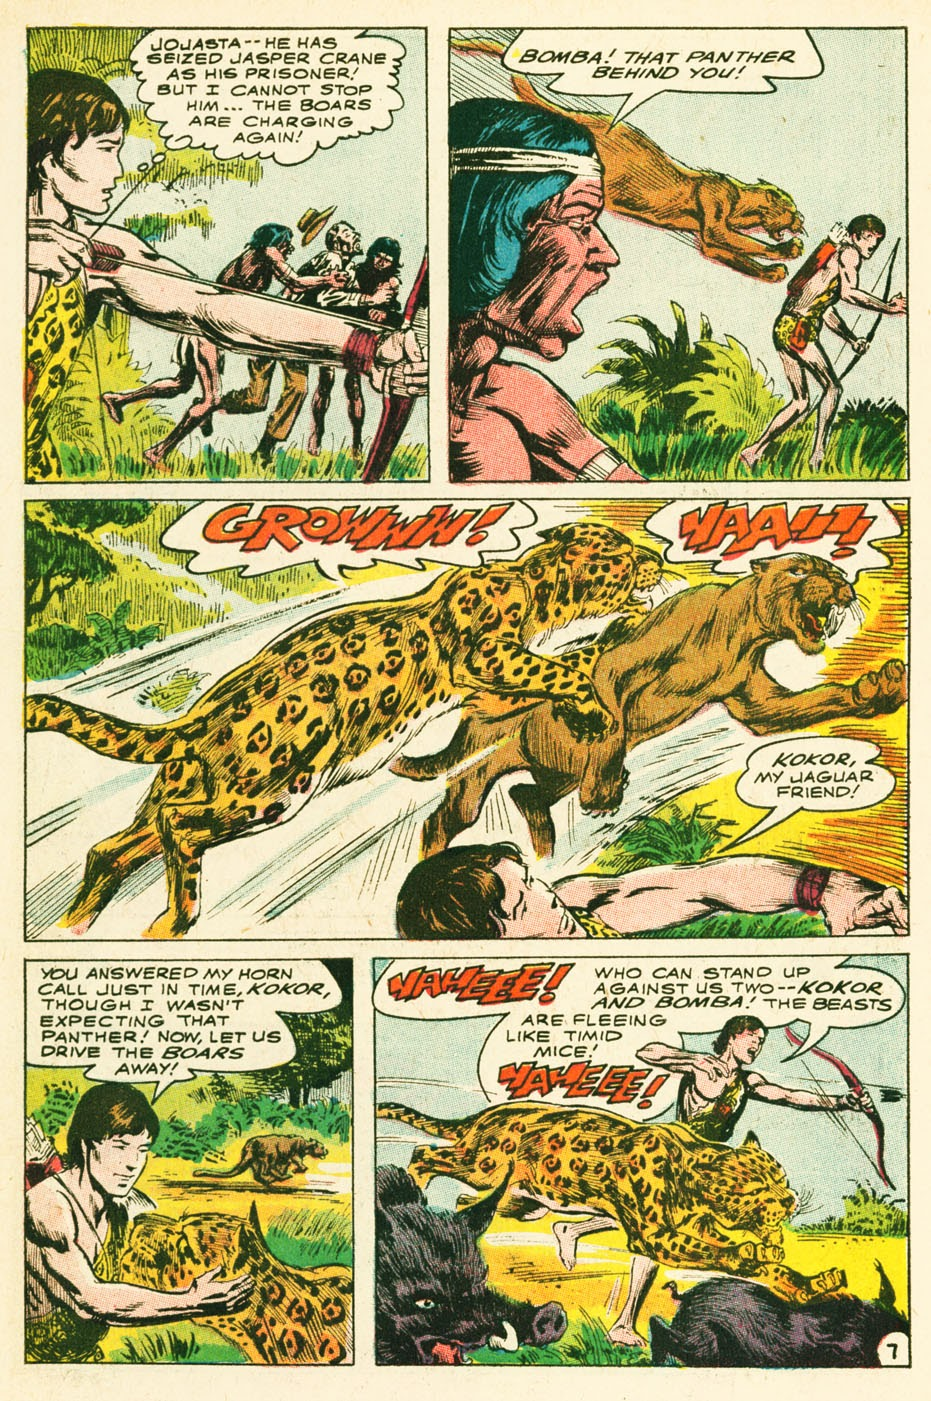 Bomba, The Jungle Boy issue 1 - Page 8